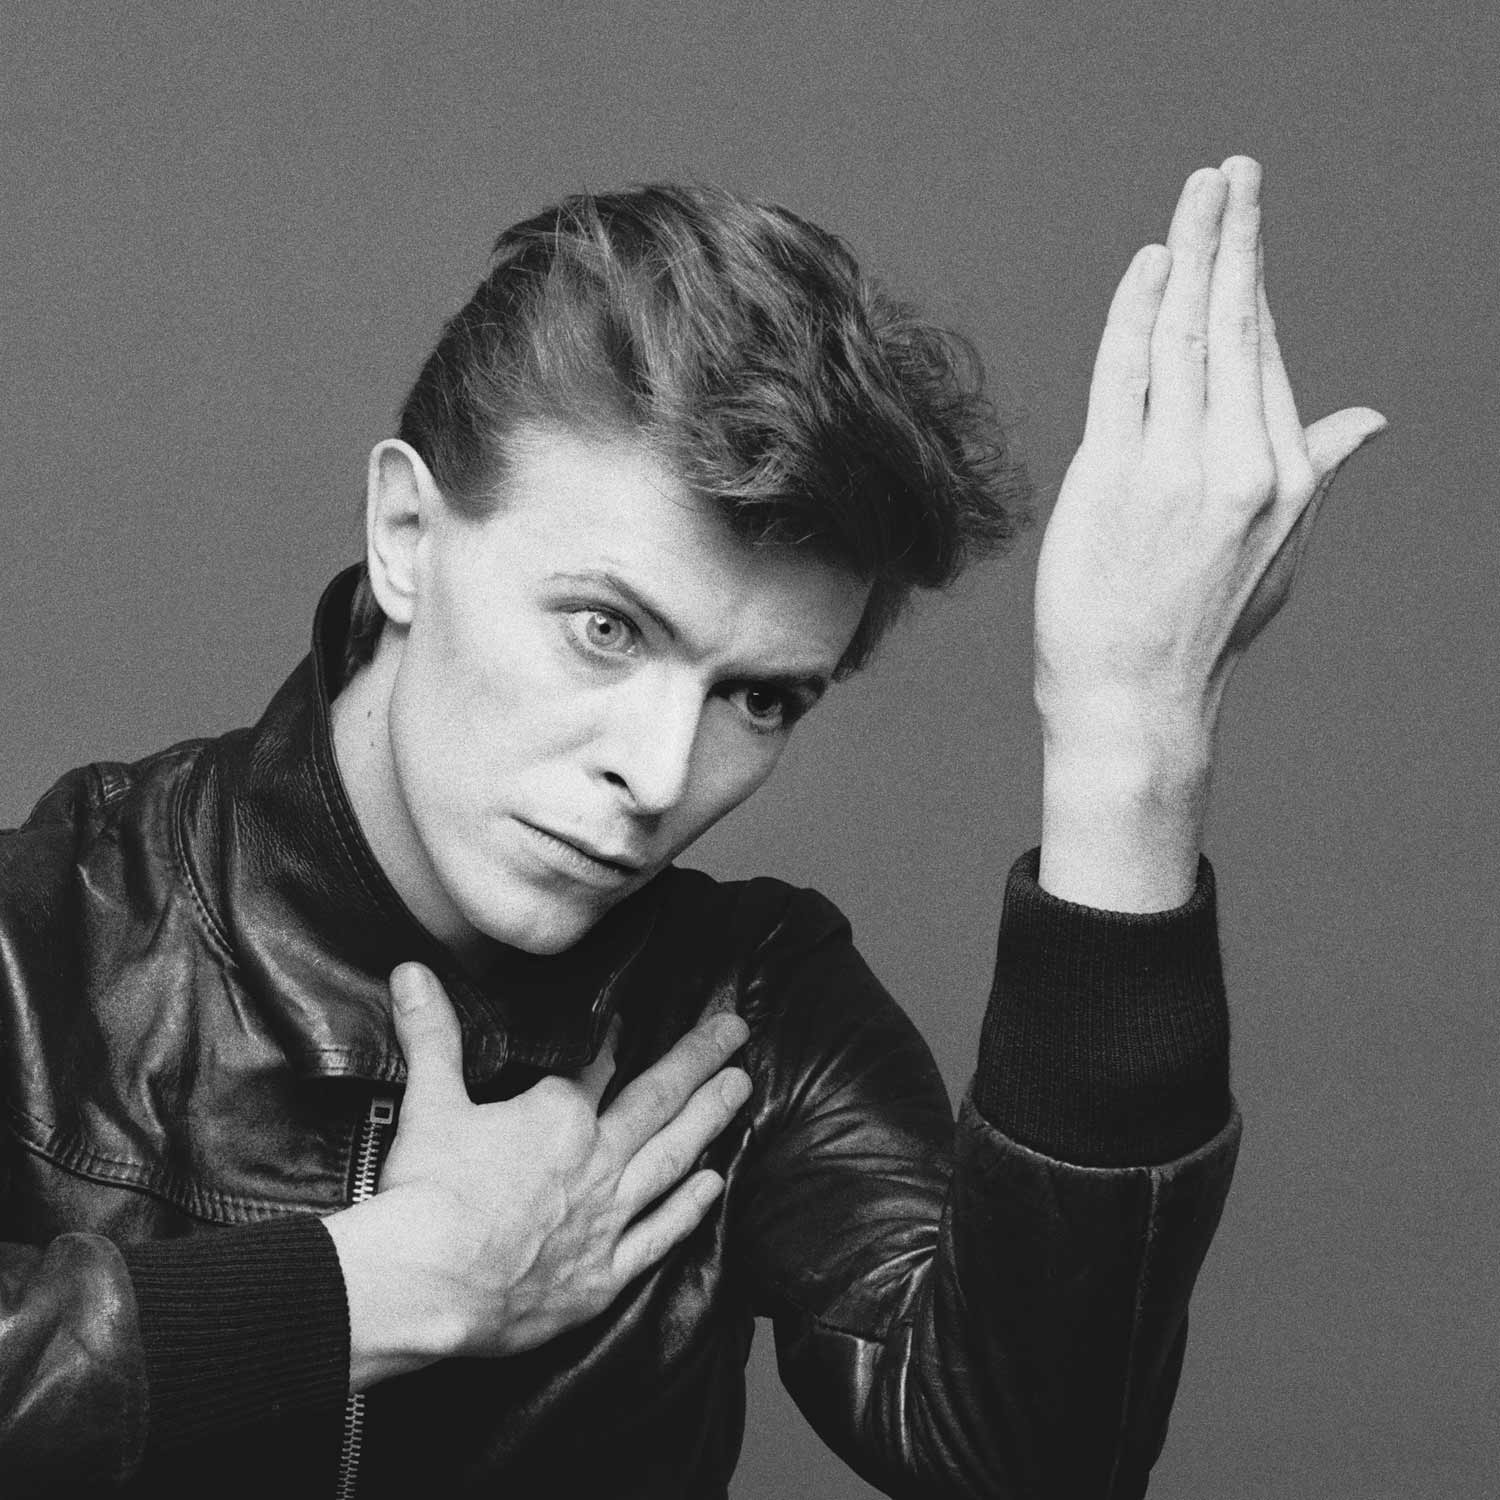 DAVID BOWIE's FIRST RECORDING DISCOVERED IN UNLIKELY PLACE